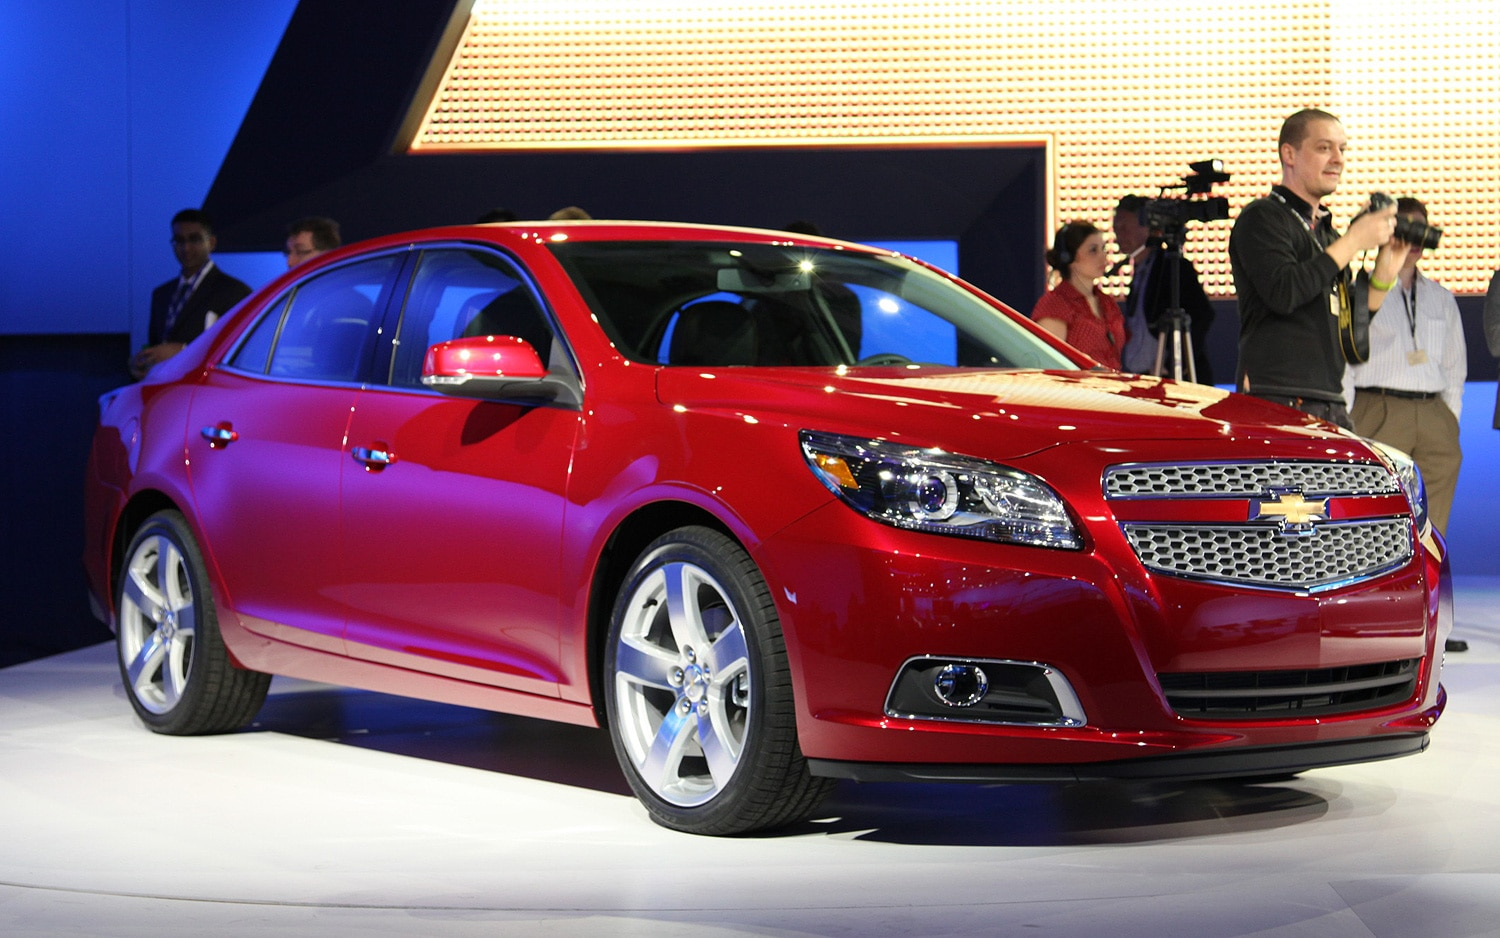 2012 Chevrolet Malibu Front Three Quarters View1